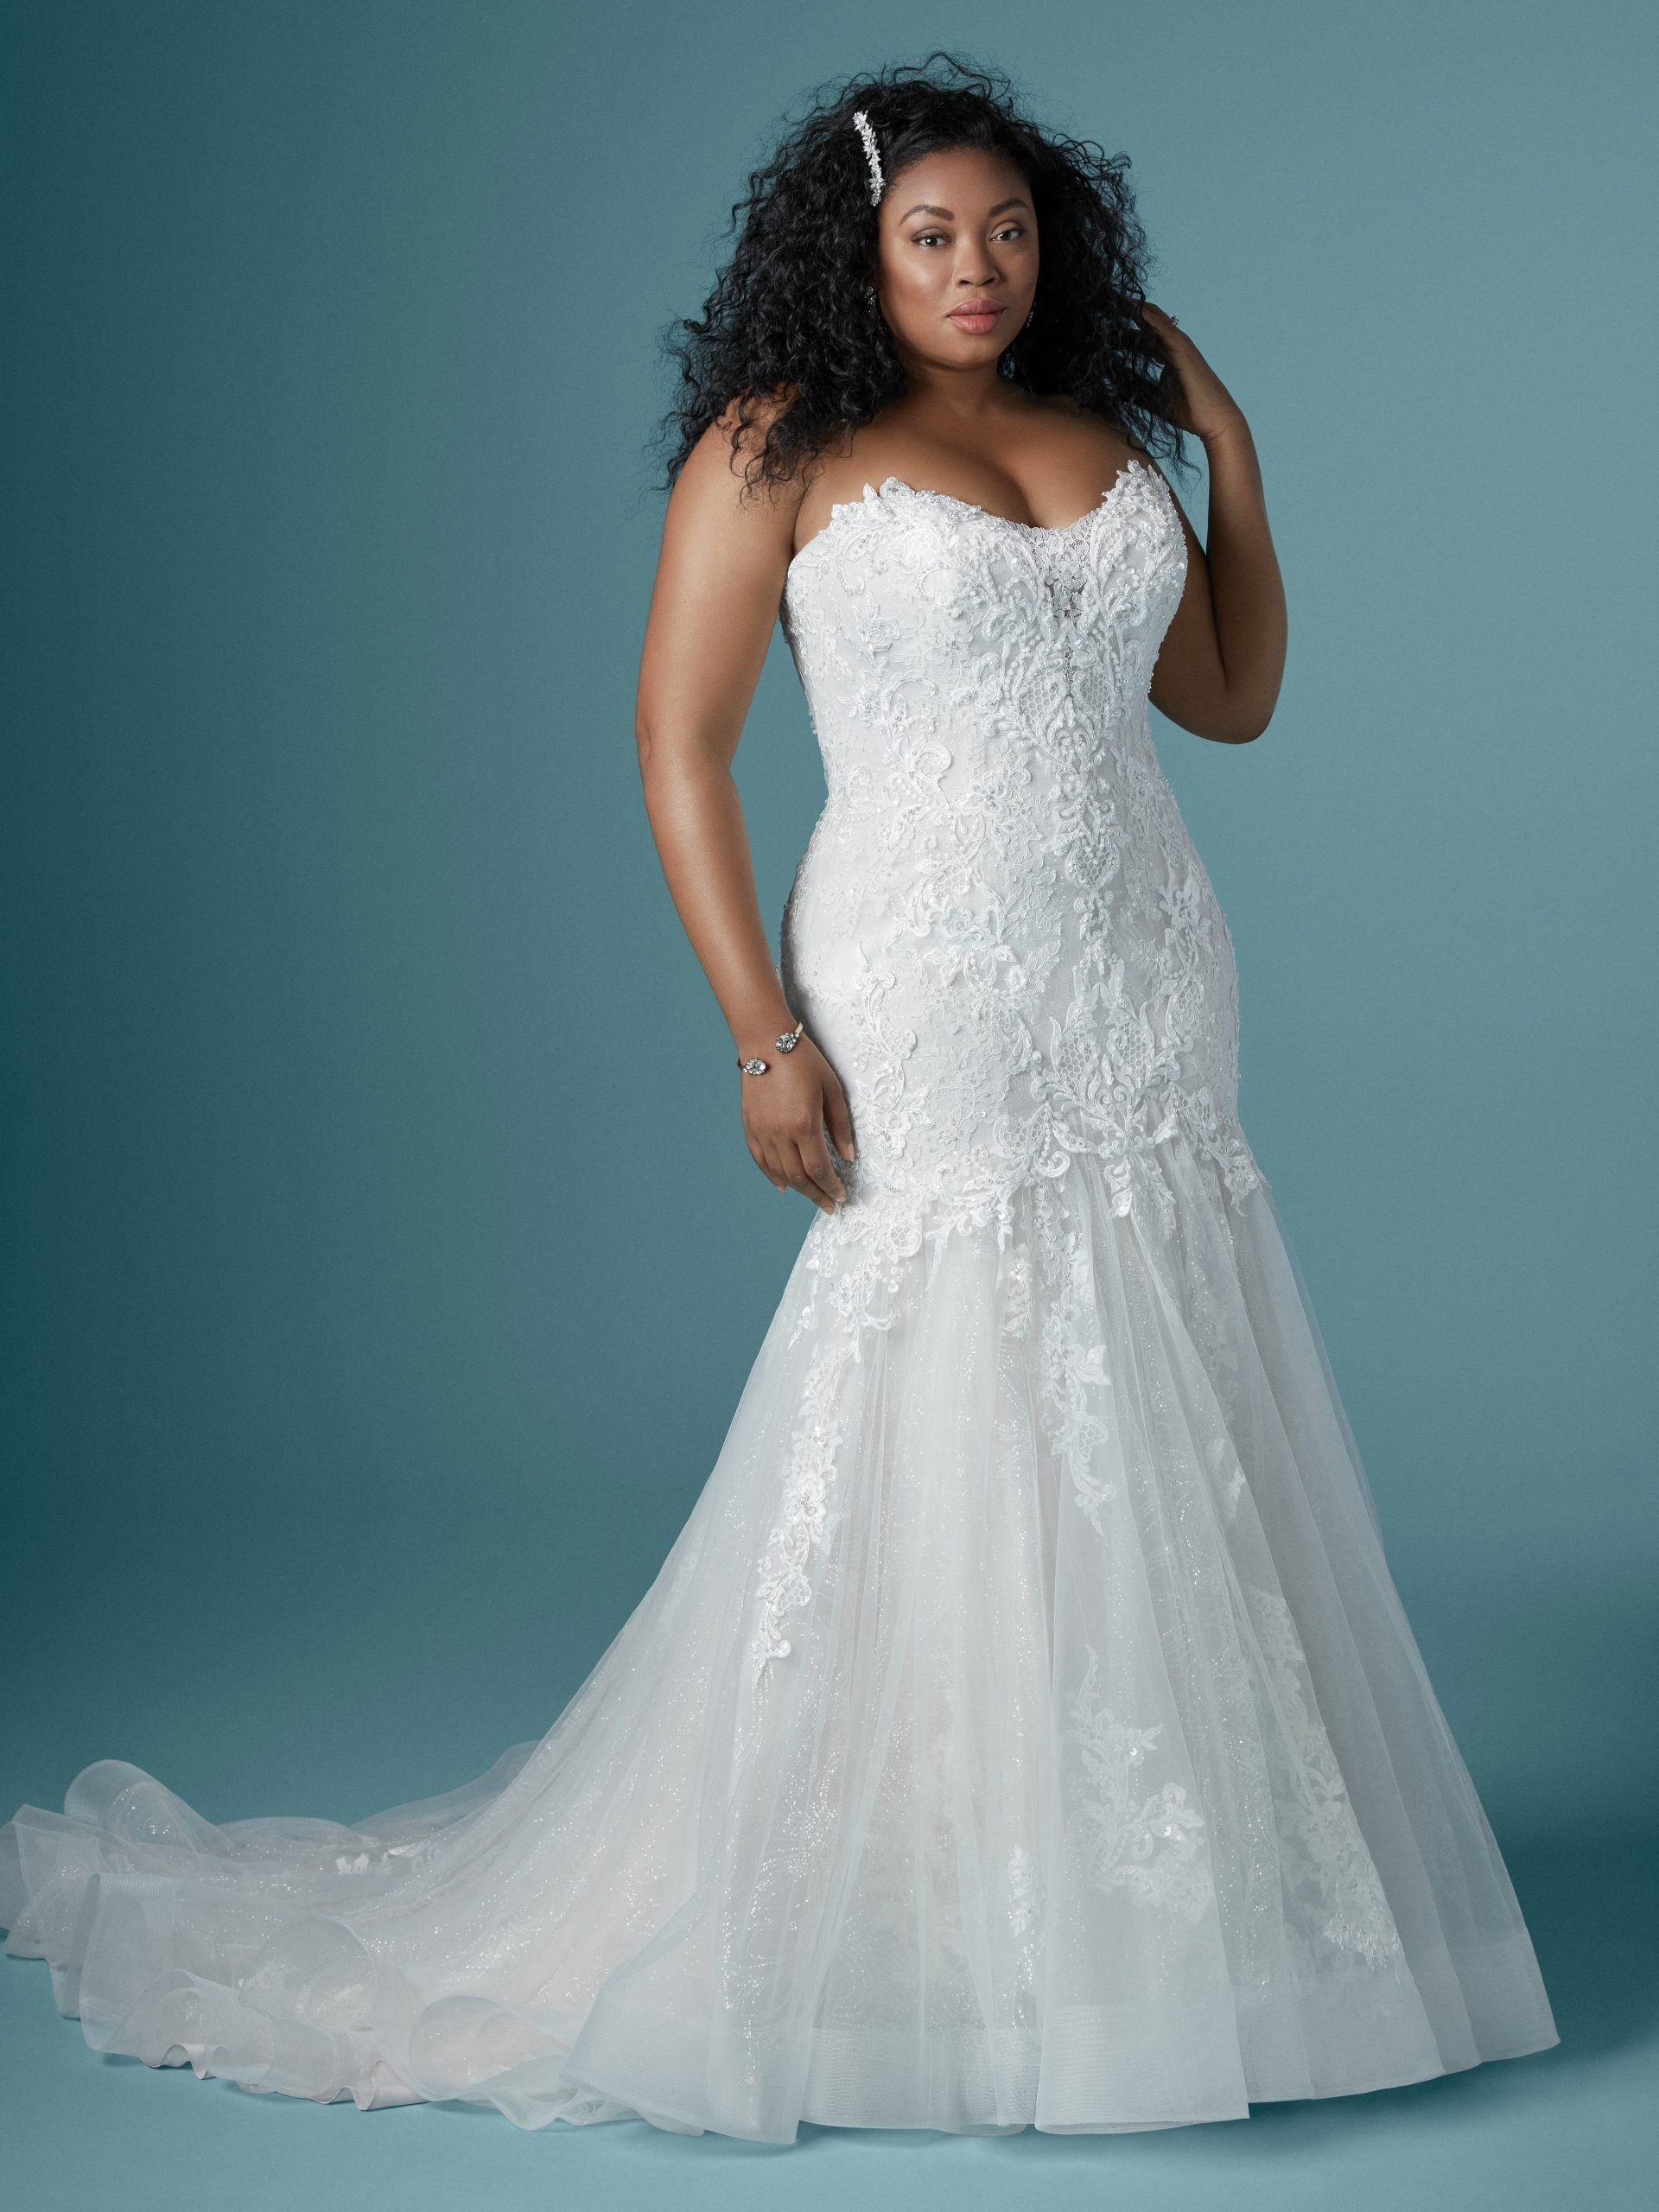 Model Wearing Plus Size Mermaid Wedding Gown Called Lonnie Lynette by Maggie Sottero